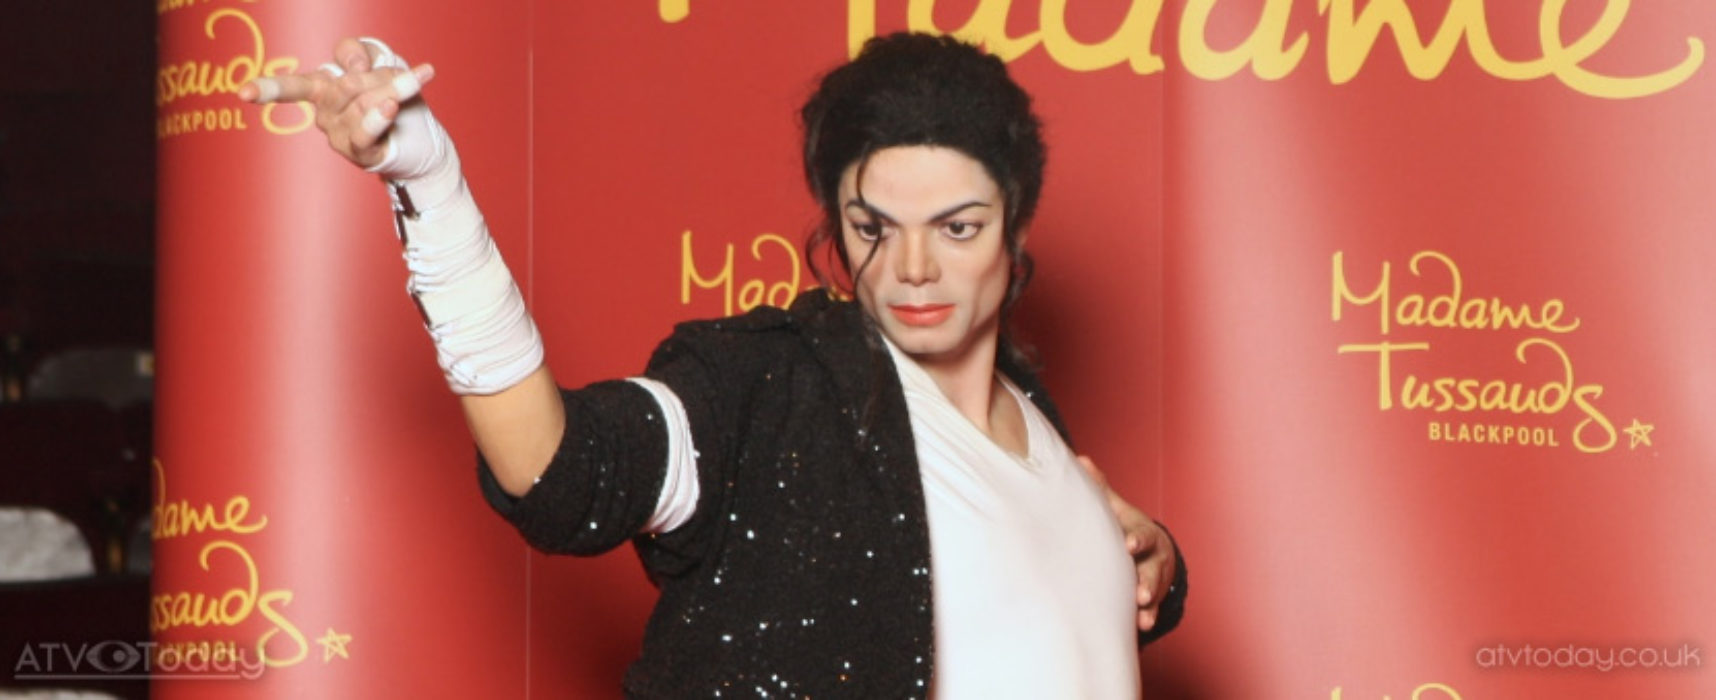 Michael Jackson sexual abuse documentary to air on UK television